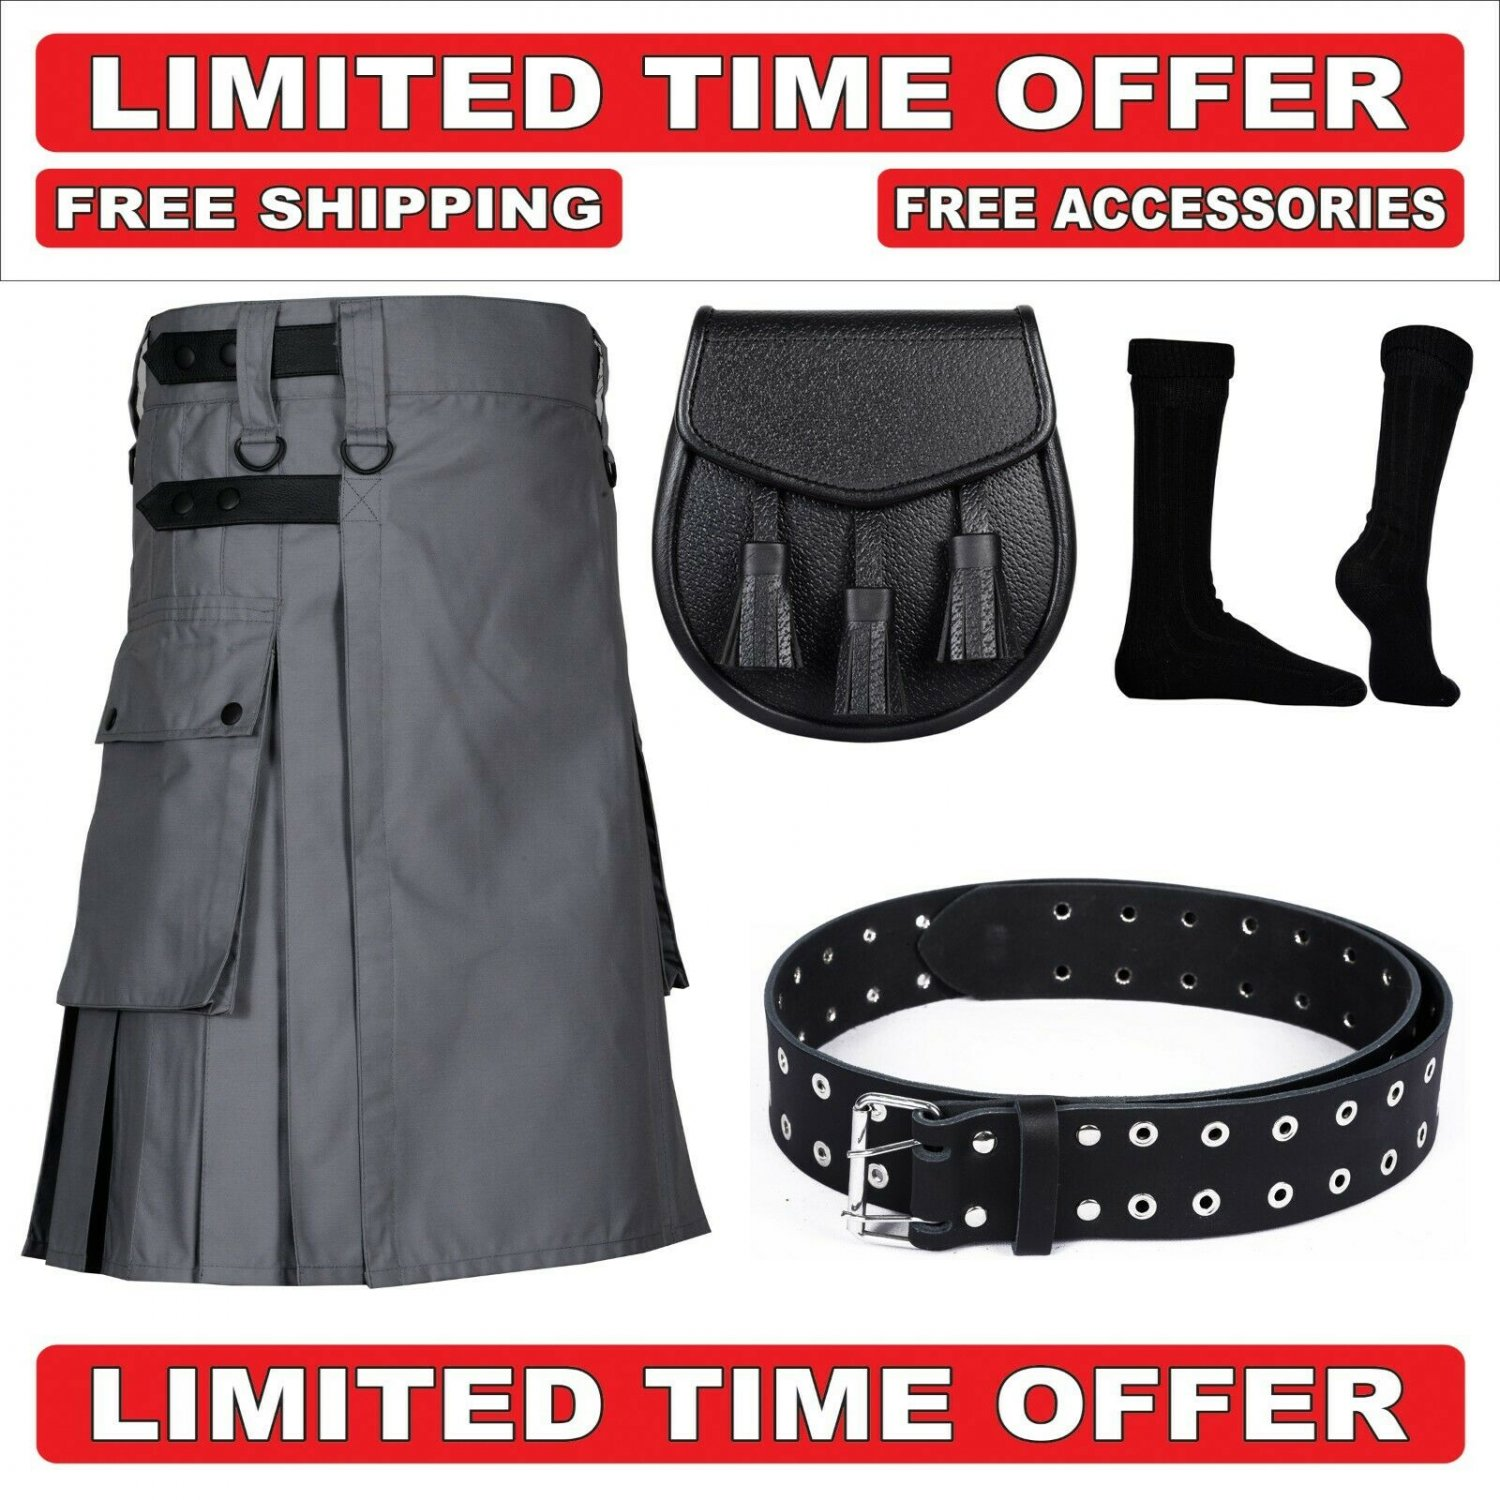 40 size grey Men's Cotton Utility Scottish Kilt With Free Accessories and Free Shipping